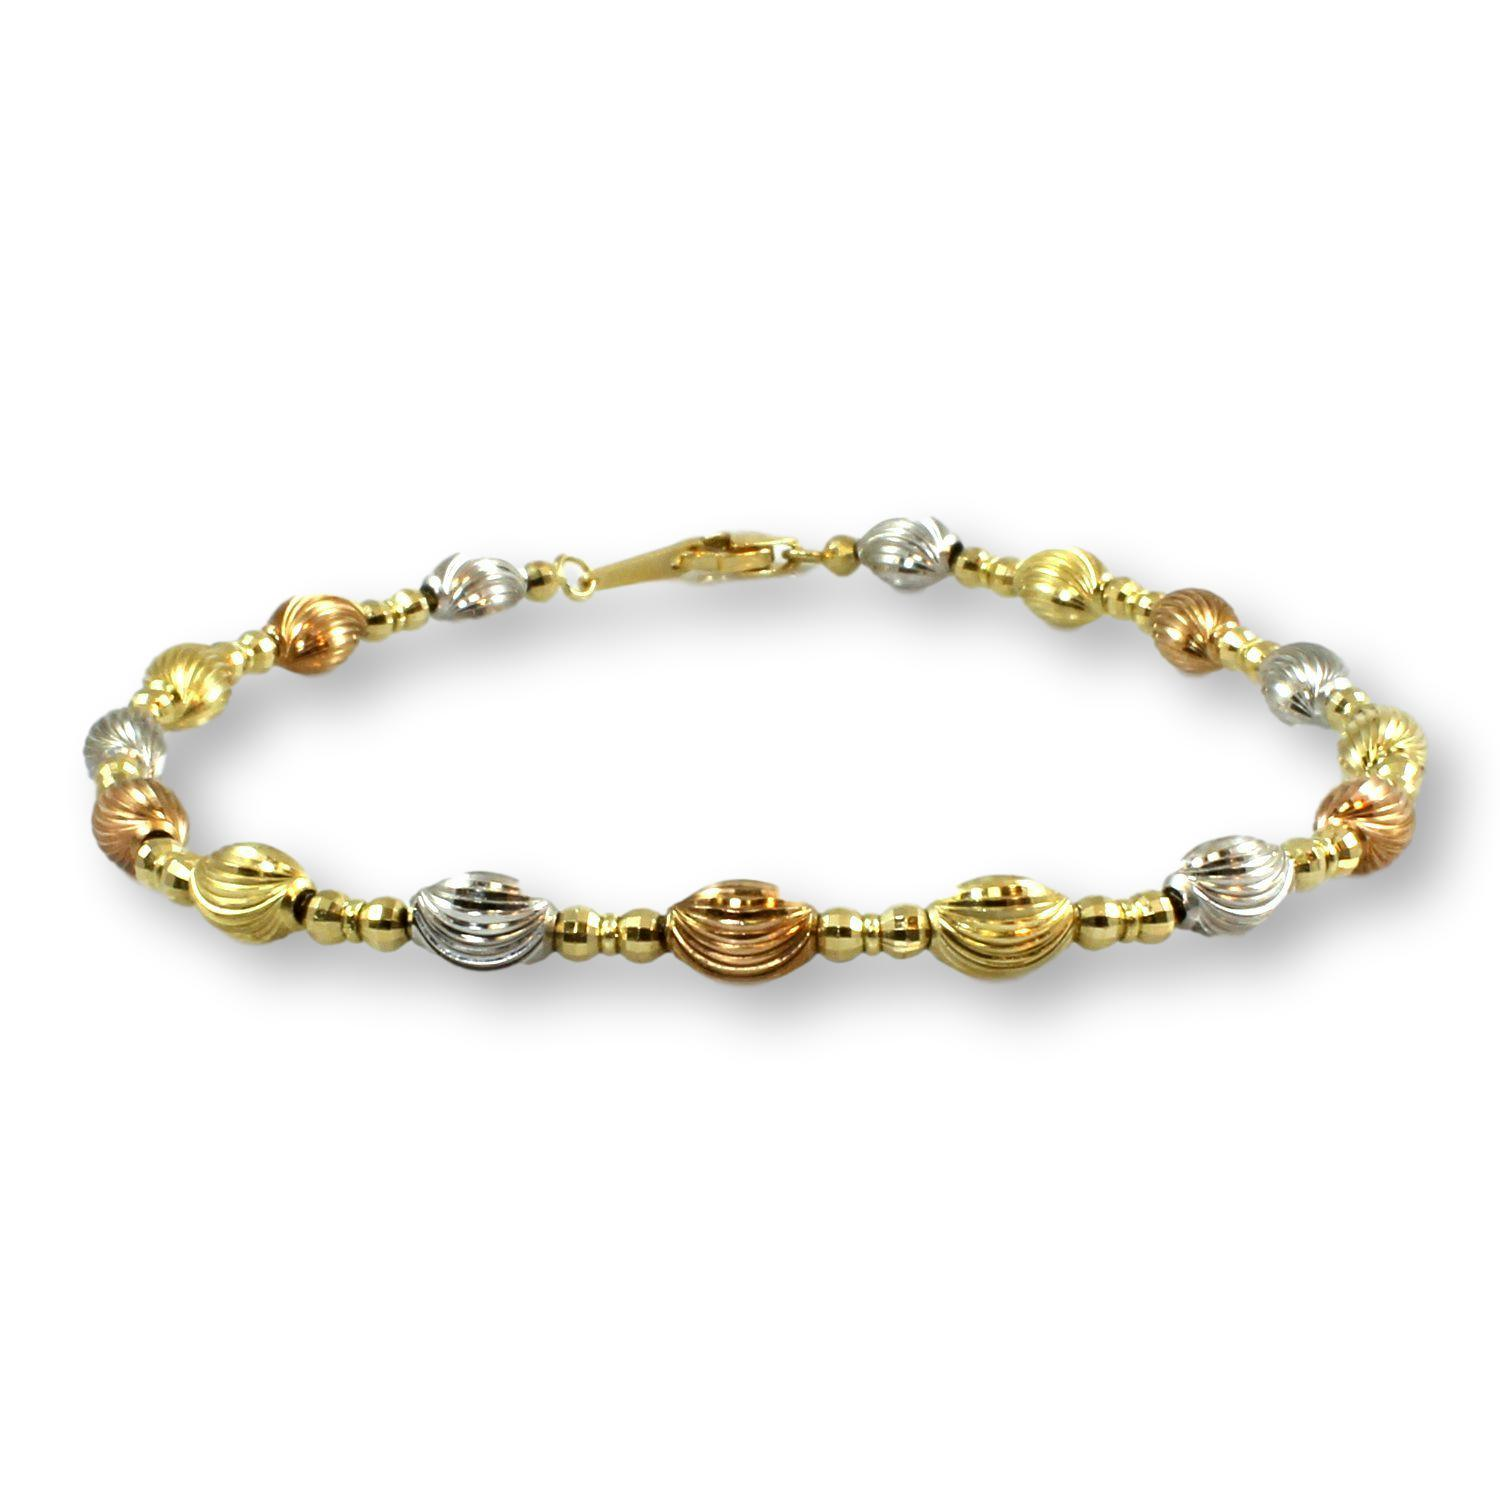 14K-Yellow-White--Rose-Gold-5.5mmw-Beaded-Bracelet_89418A.jpg